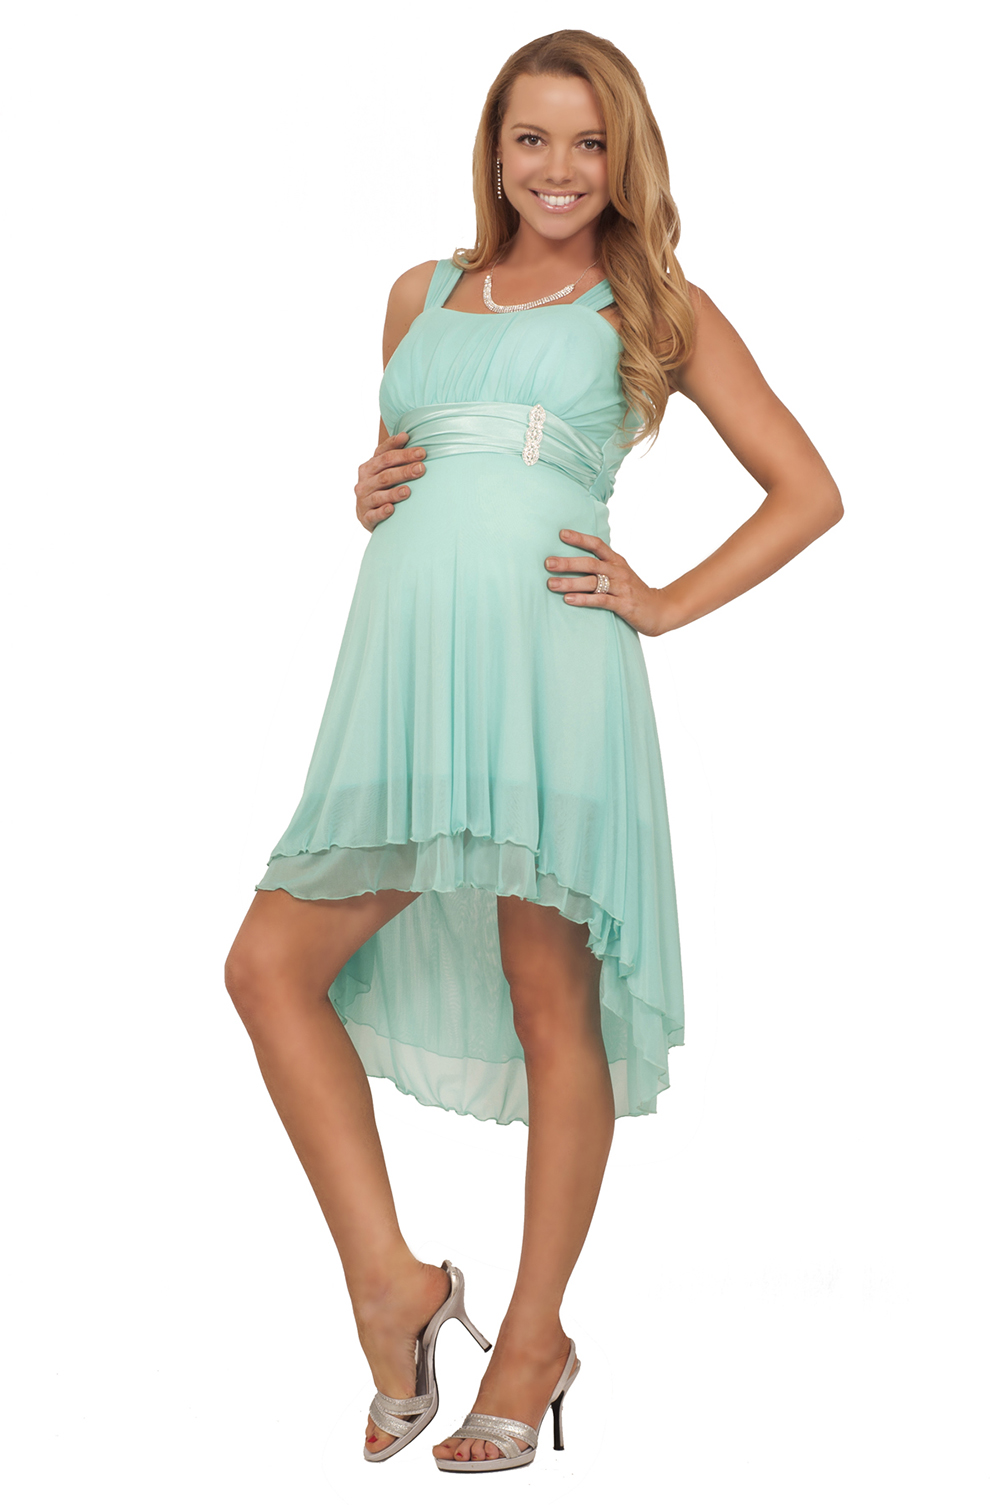 Full Size of Baby Shower:stylish Maternity Dresses For Baby Shower Ba Shower Outfits For Ba Shower Cute Maternity Dress Ba Regarding Practical Baby Shower Gifts With Baby Shower Event Planner Plus Baby Shower Theme Ideas Together With Baby Shower Door Prizes As Well As Baby Shower Crafts